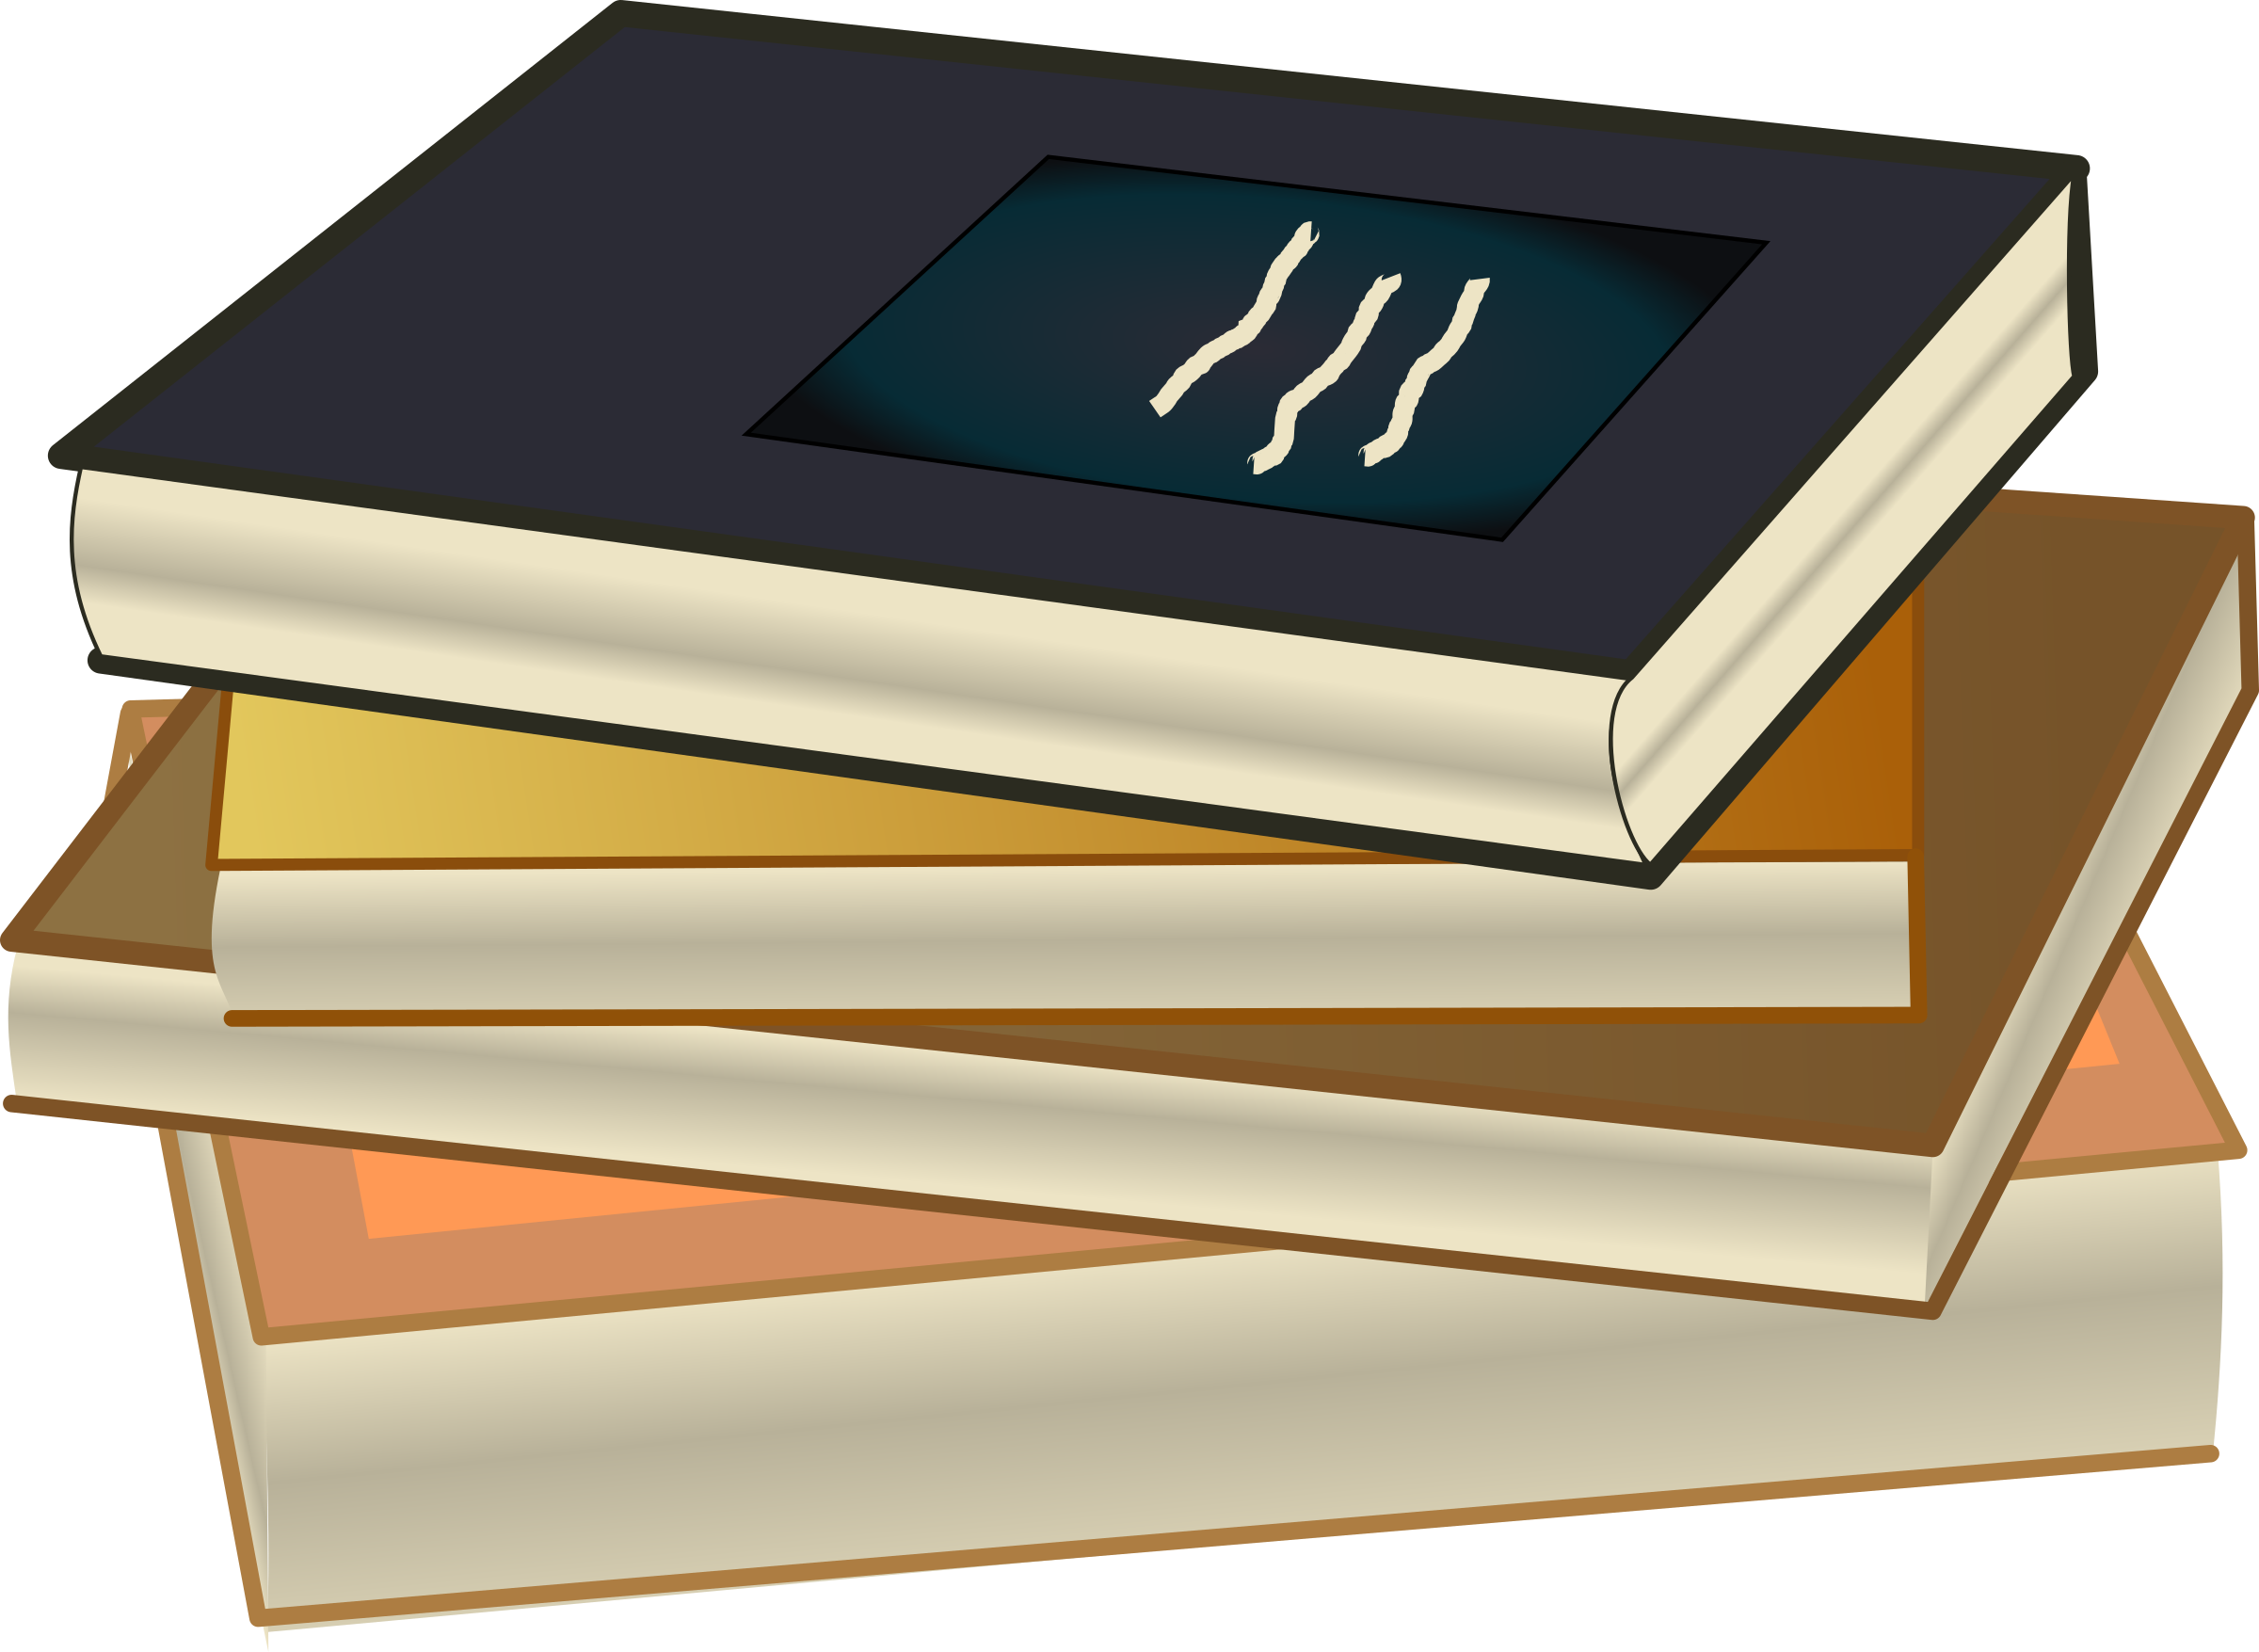 Book Stack - Pile de livres by cyberscooty